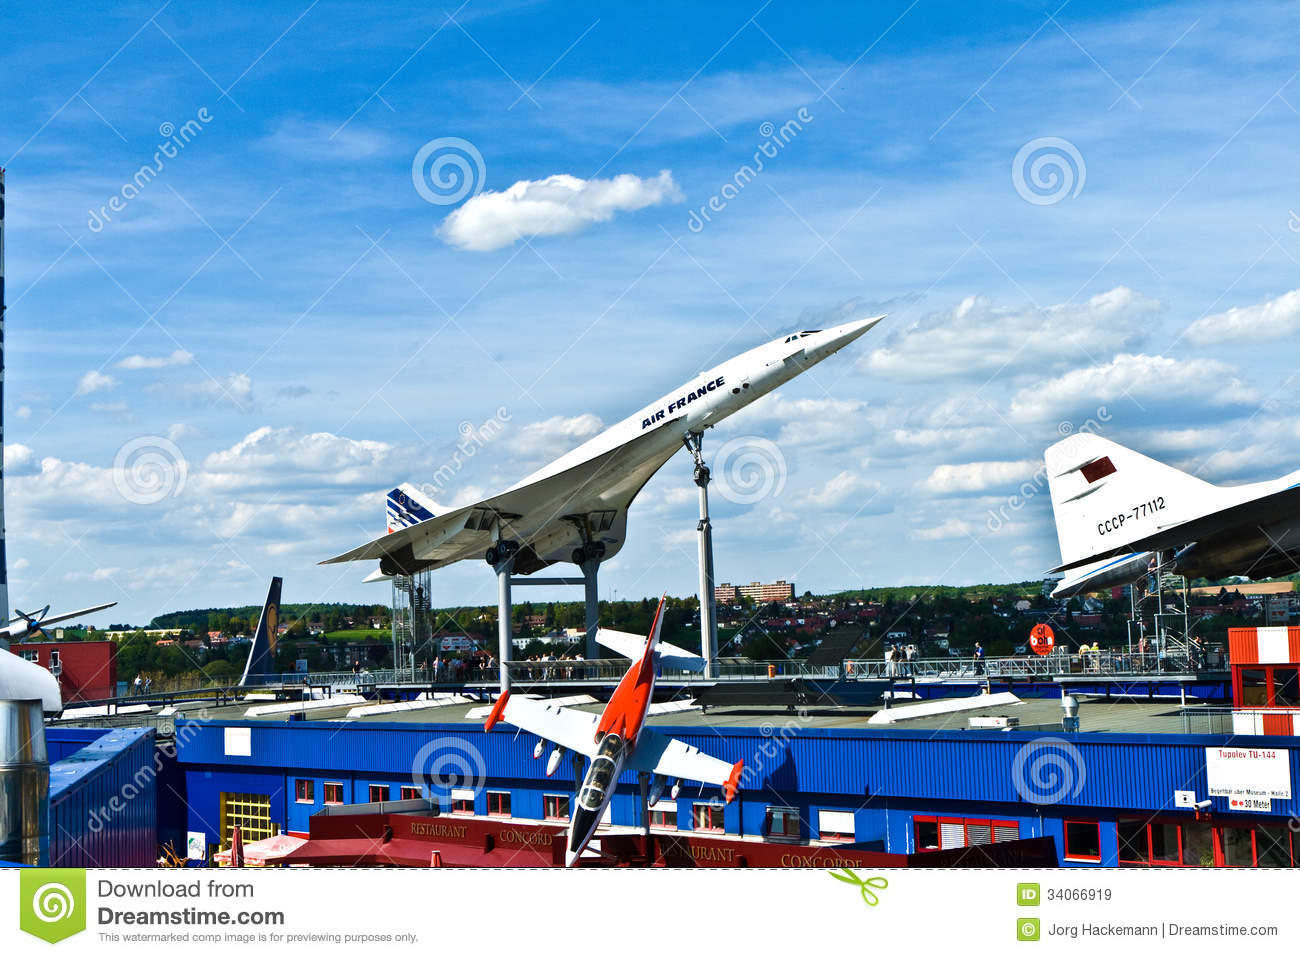 Architekt Sinsheim Aircraft Concorde In The Museum Editorial Stock Image